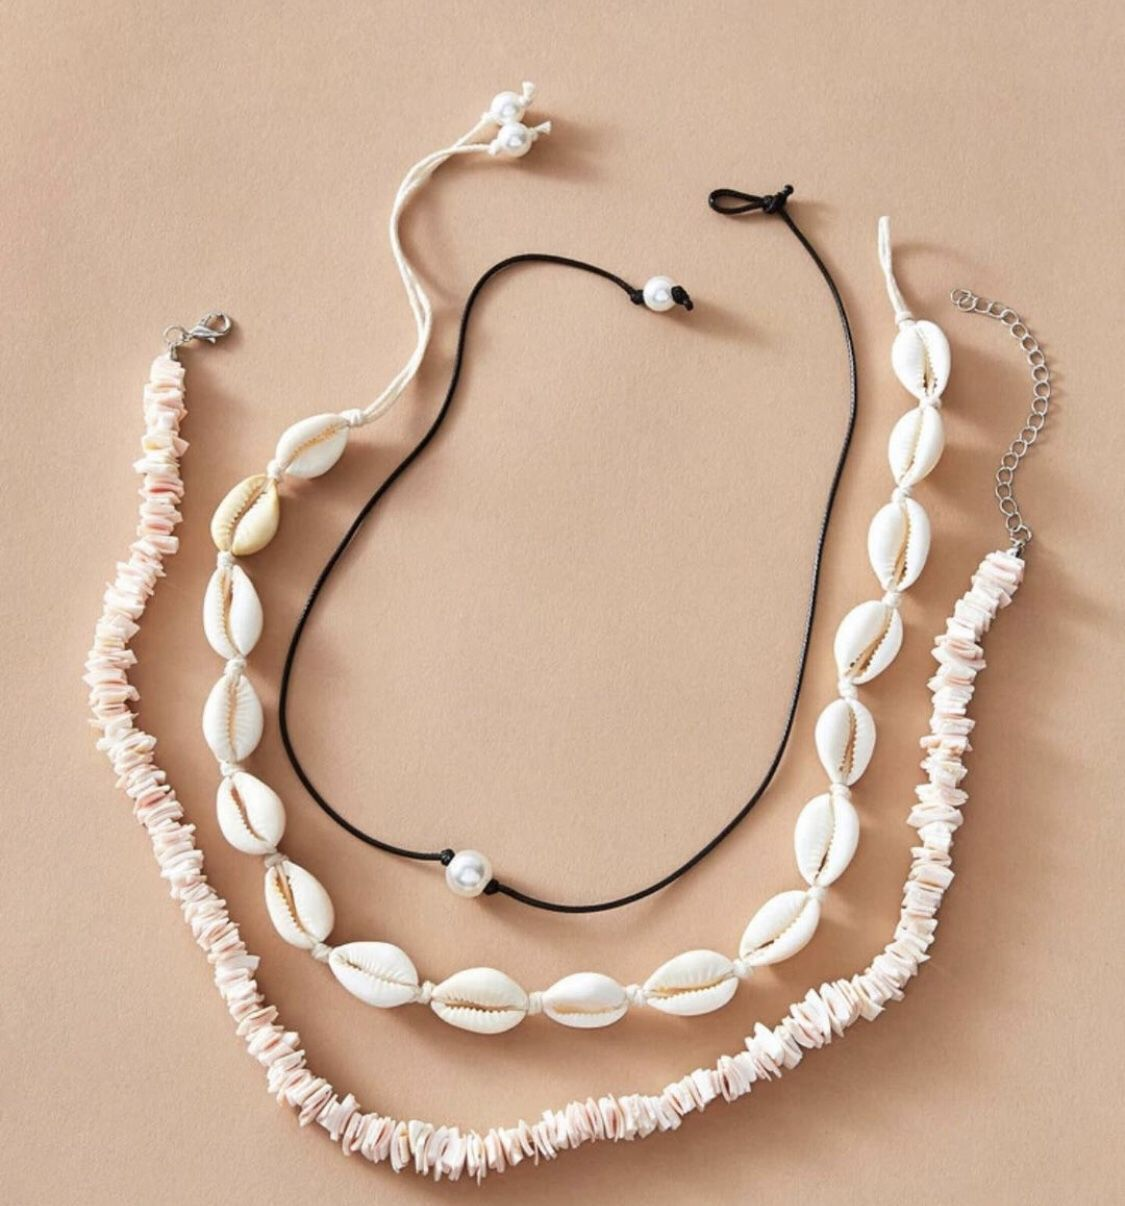 jewelry set : shell necklace, pearl bead, and another shell necklace